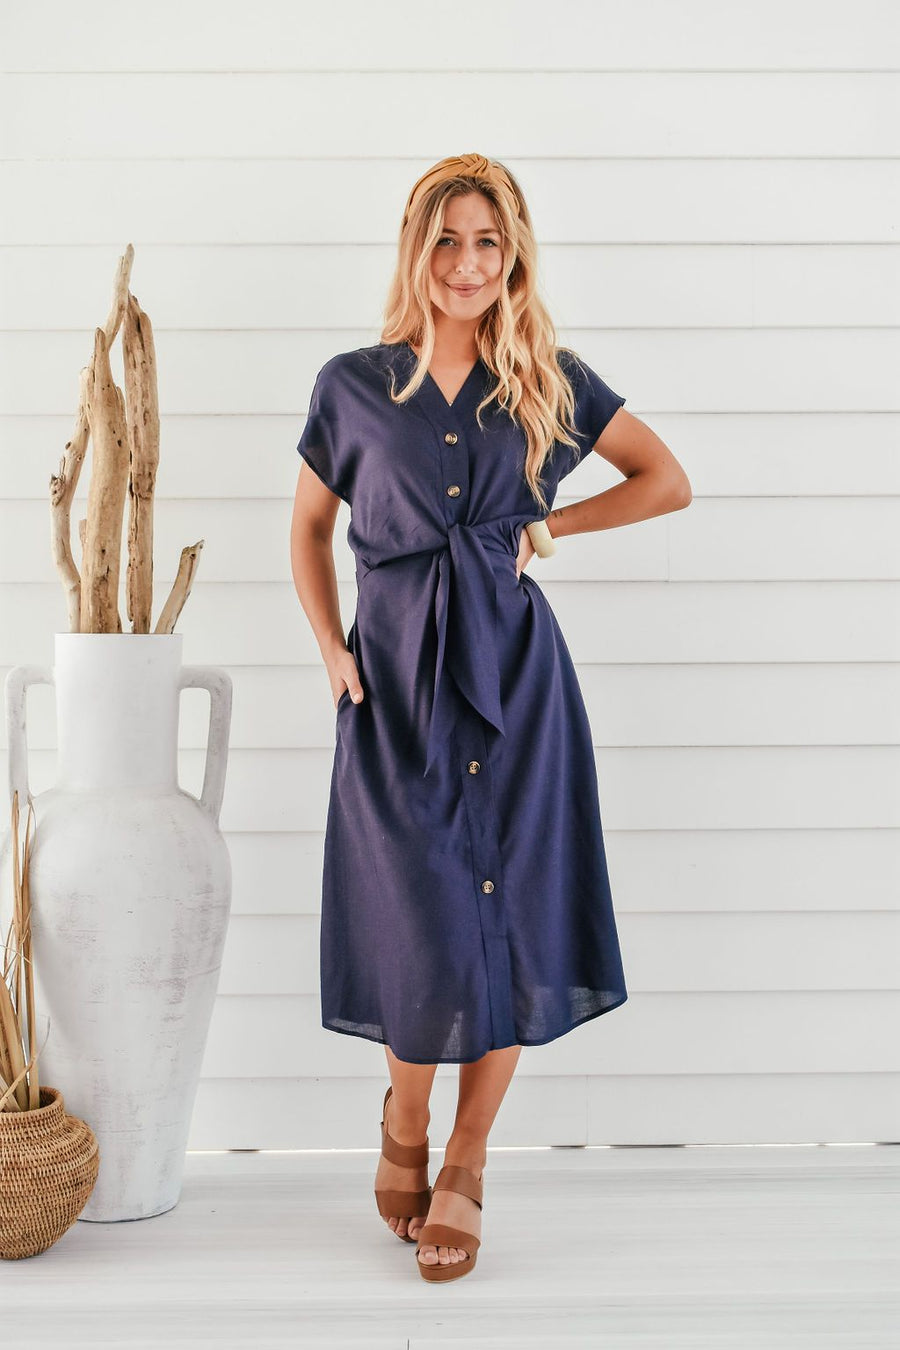 Duchess Dress | Navy Dress Gray Label